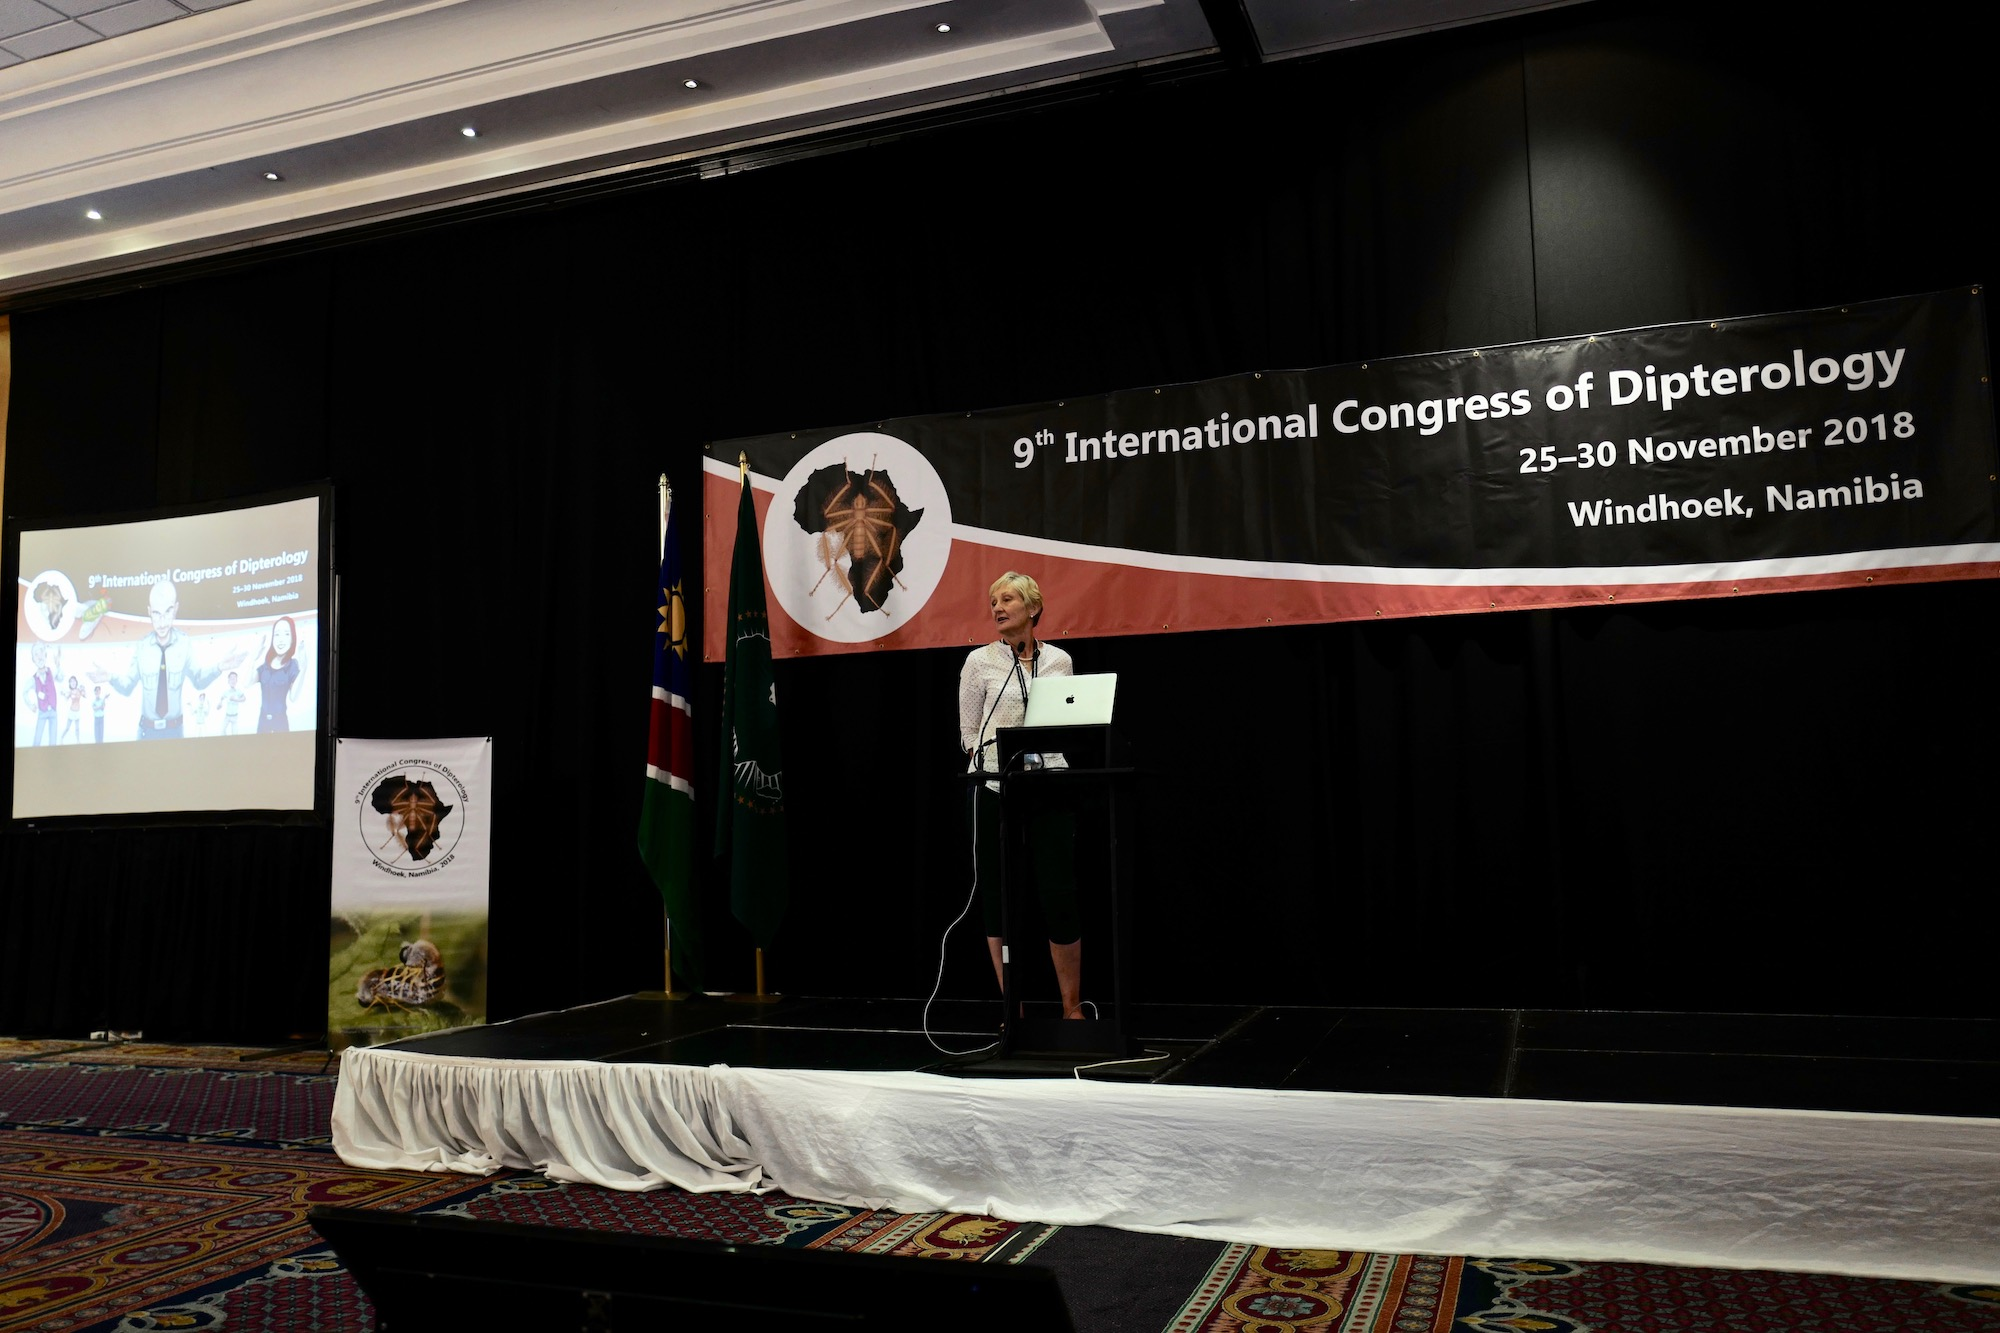 mark_benecke_ICD9_dipterology_world_congress_windhoeck_namibia - 158.jpg